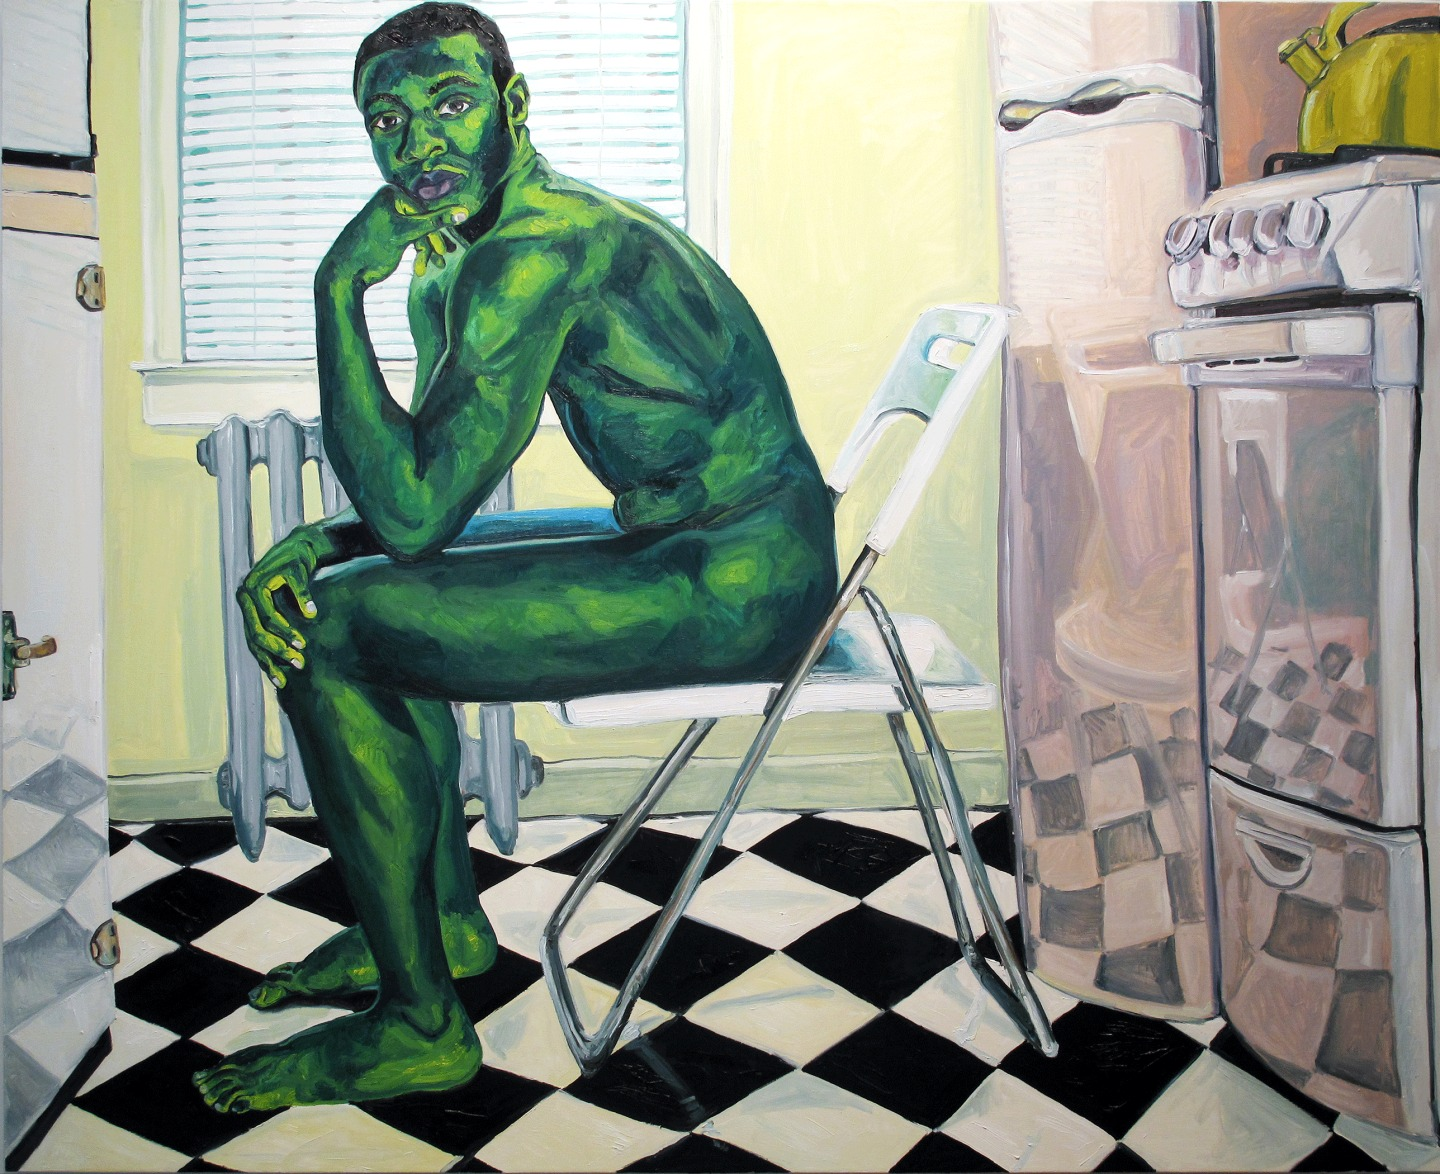 This Artist Wants You To See The Fullness Of Black Men's Lives